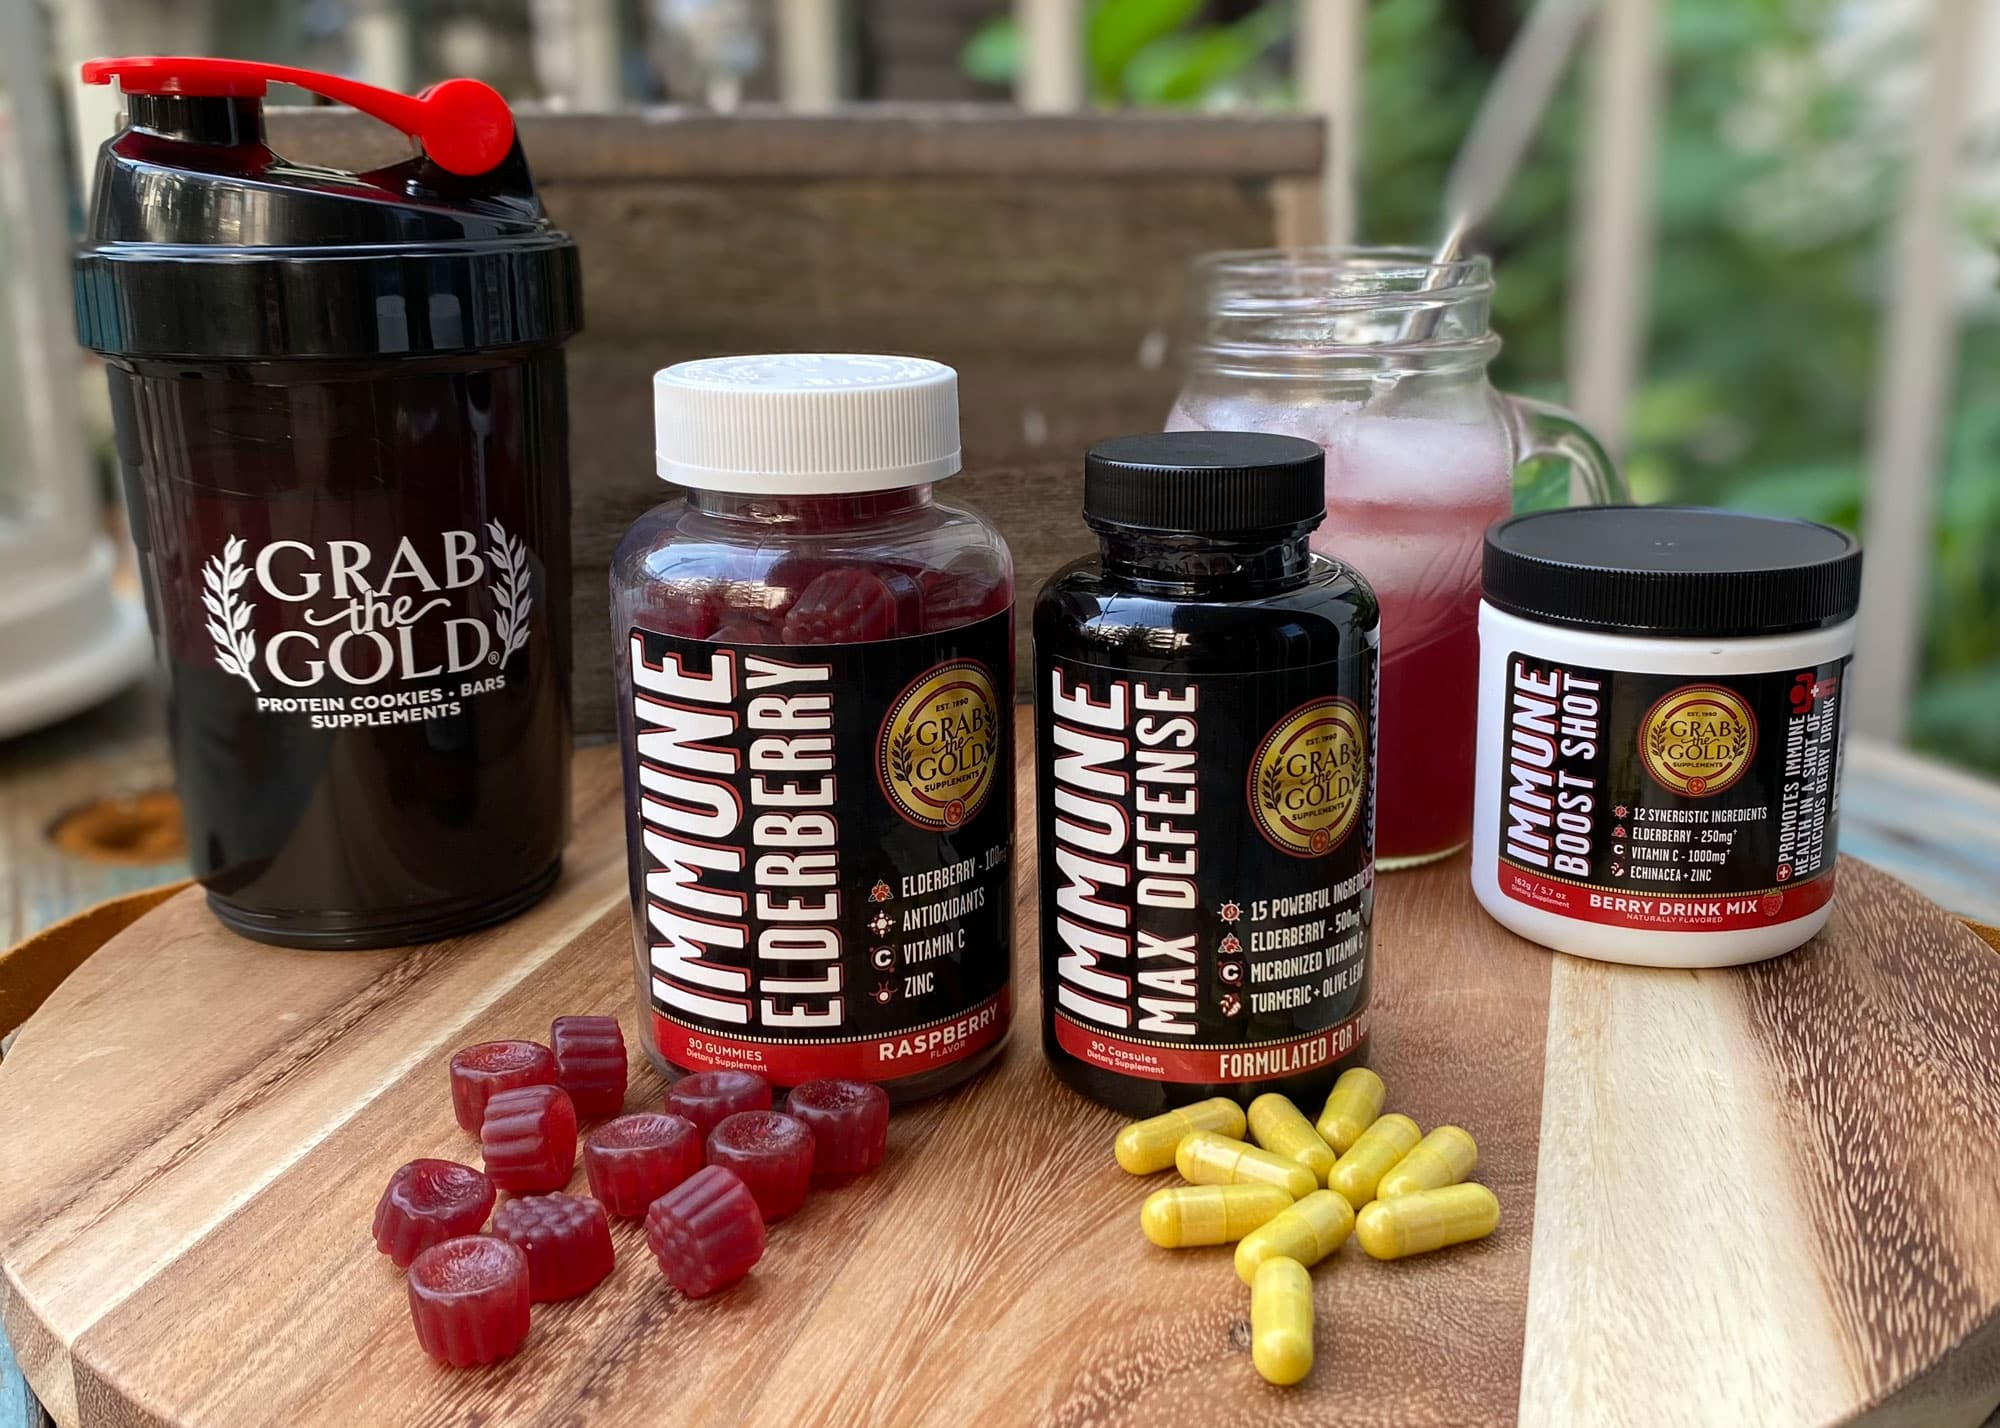 grab the gold immune support supplements